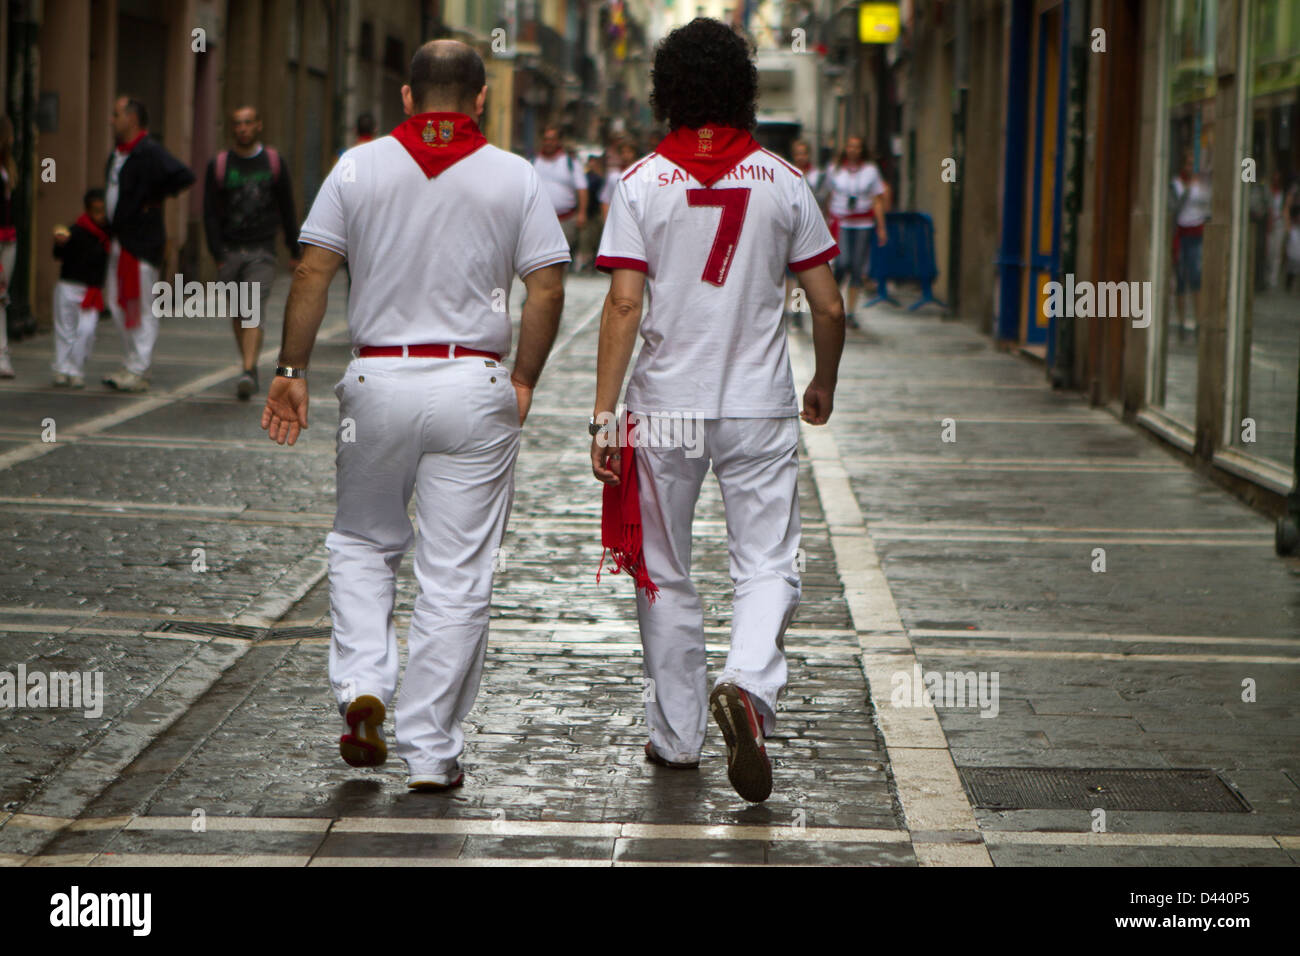 Young men walk along the streets of Pamplona wearing the traditional red and white clothes during San Fermin festival. Stock Photo